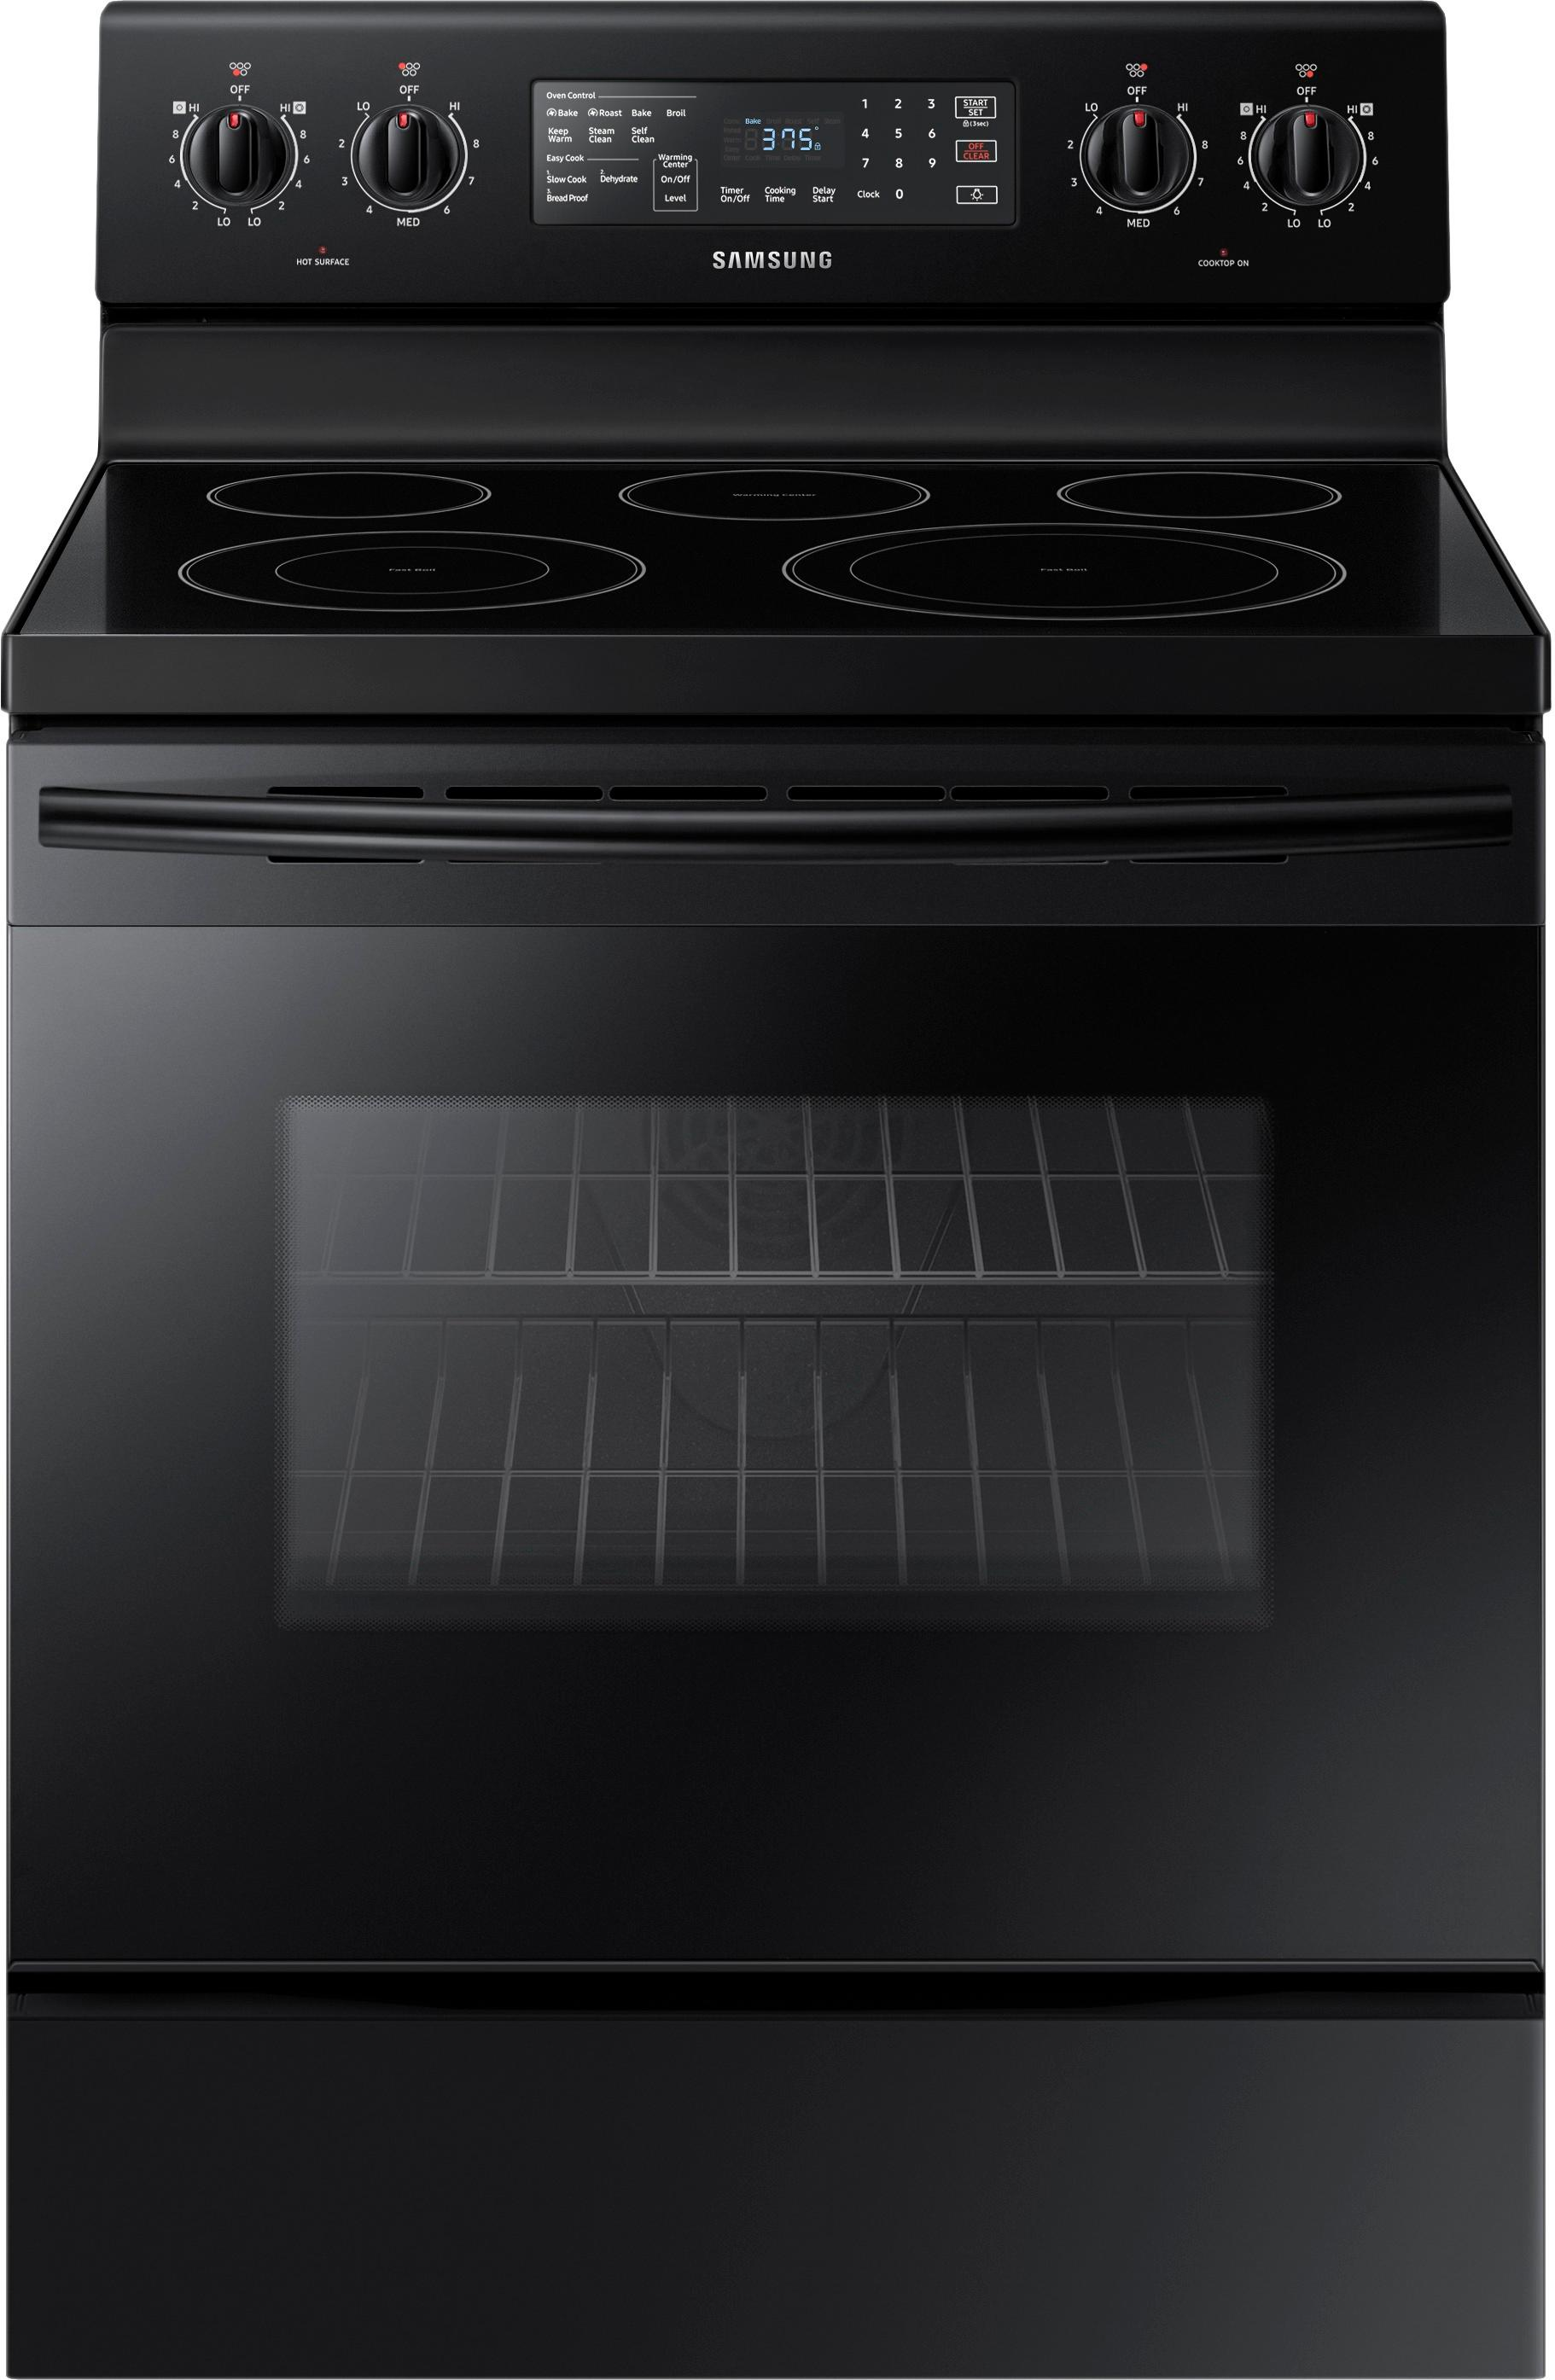 electric stove 2005 f150 ac clutch wiring diagram best buy convection freestanding range black